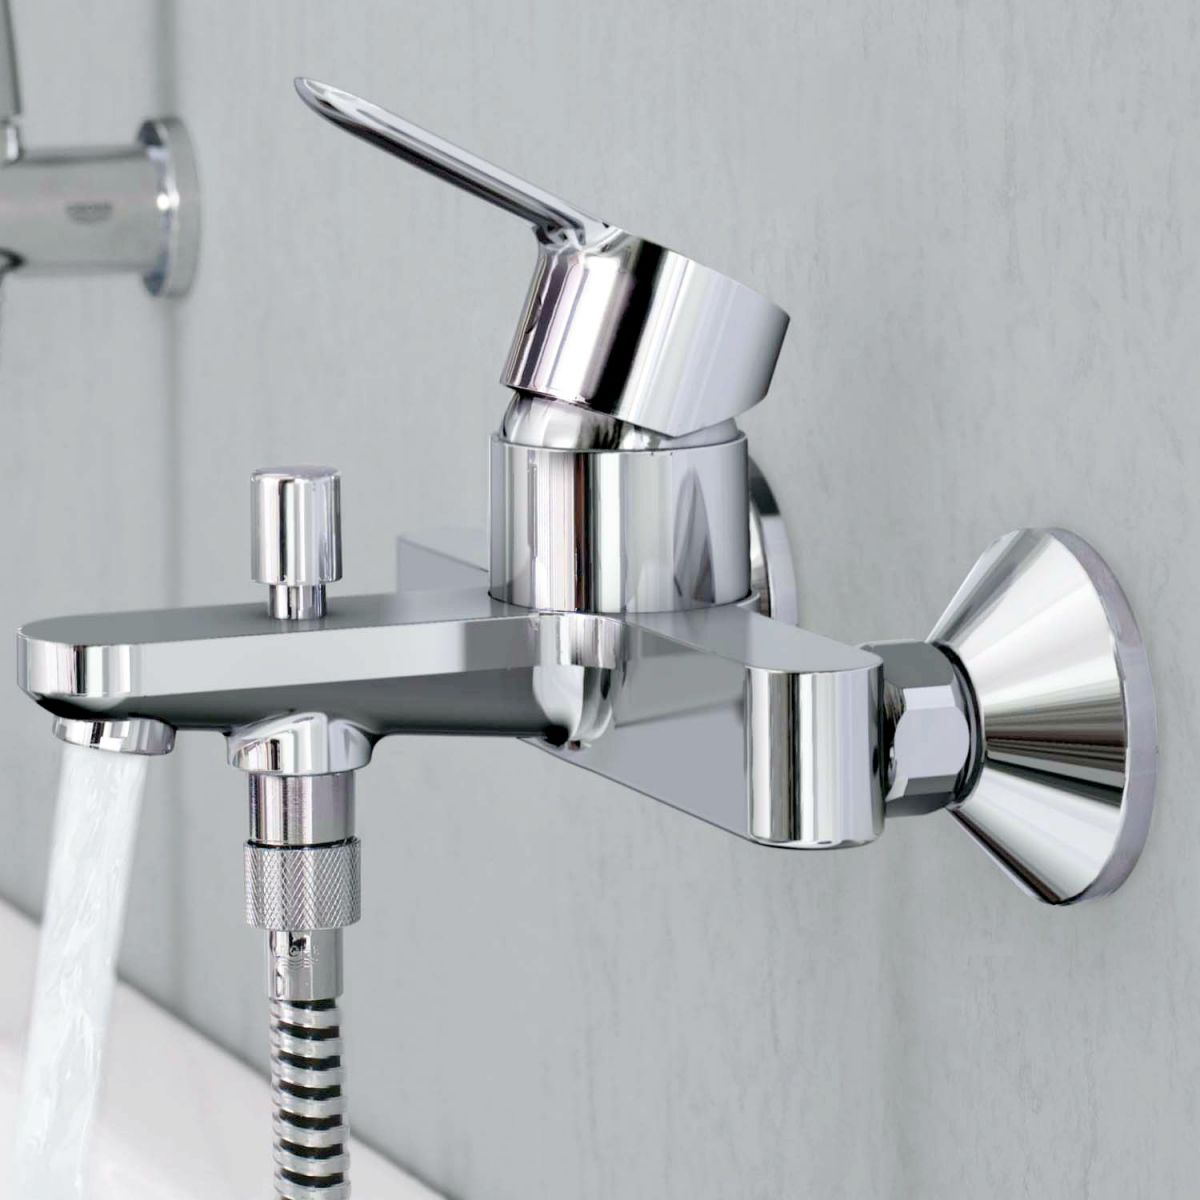 grohe bauedge wall mounted bath shower mixer uk bathrooms. Black Bedroom Furniture Sets. Home Design Ideas